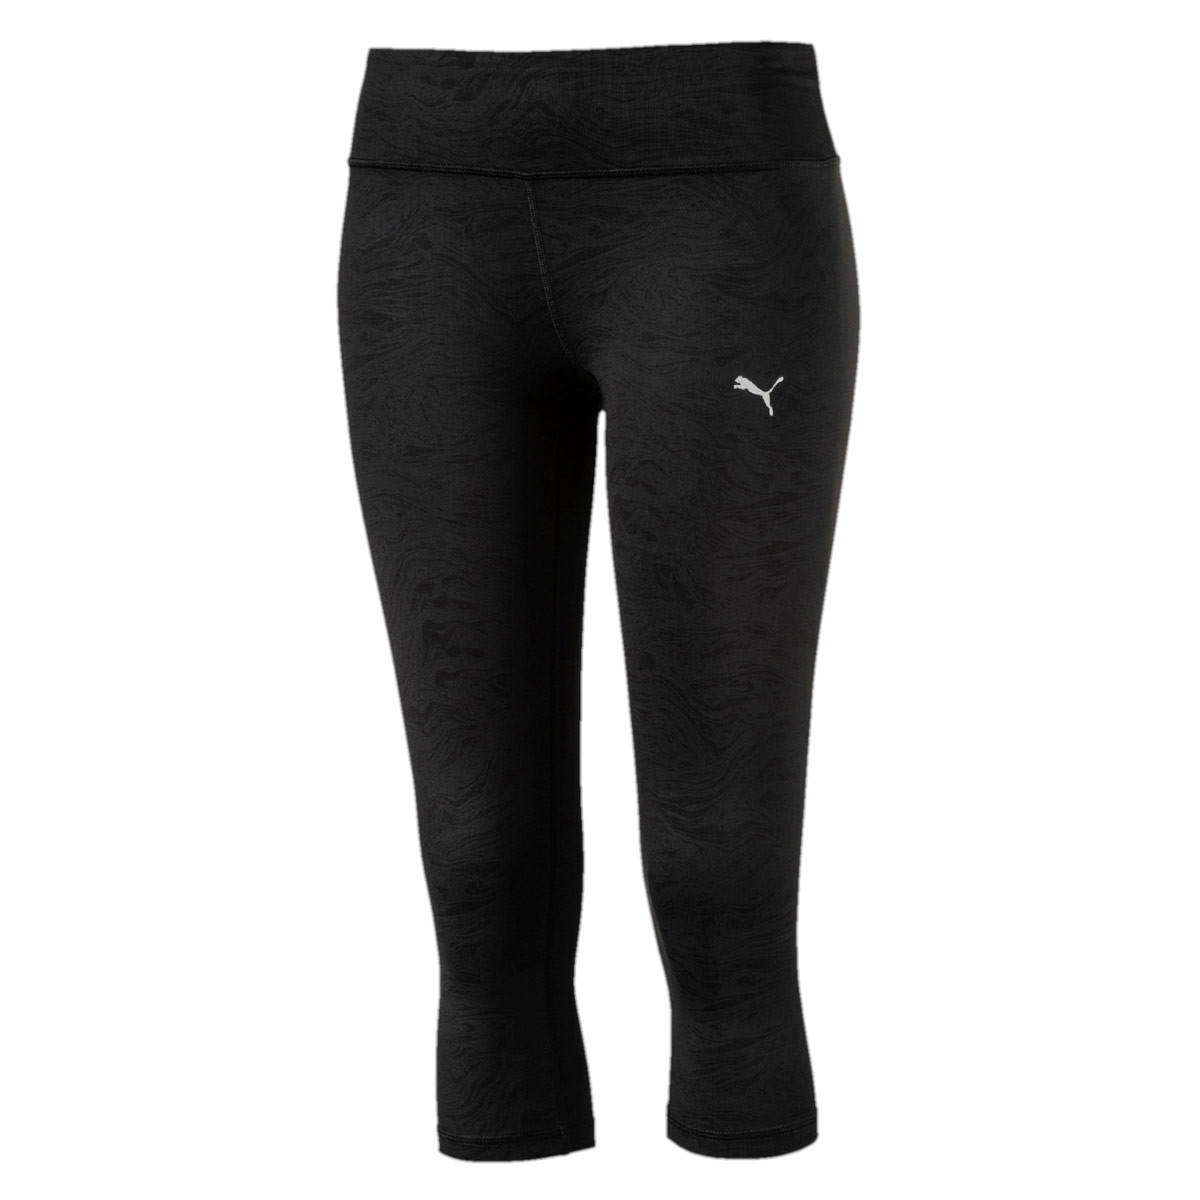 2ee1aced8a6e84 Puma ALL EYES ON ME 3/4 Tight - Running trousers for Women - Black | 21RUN